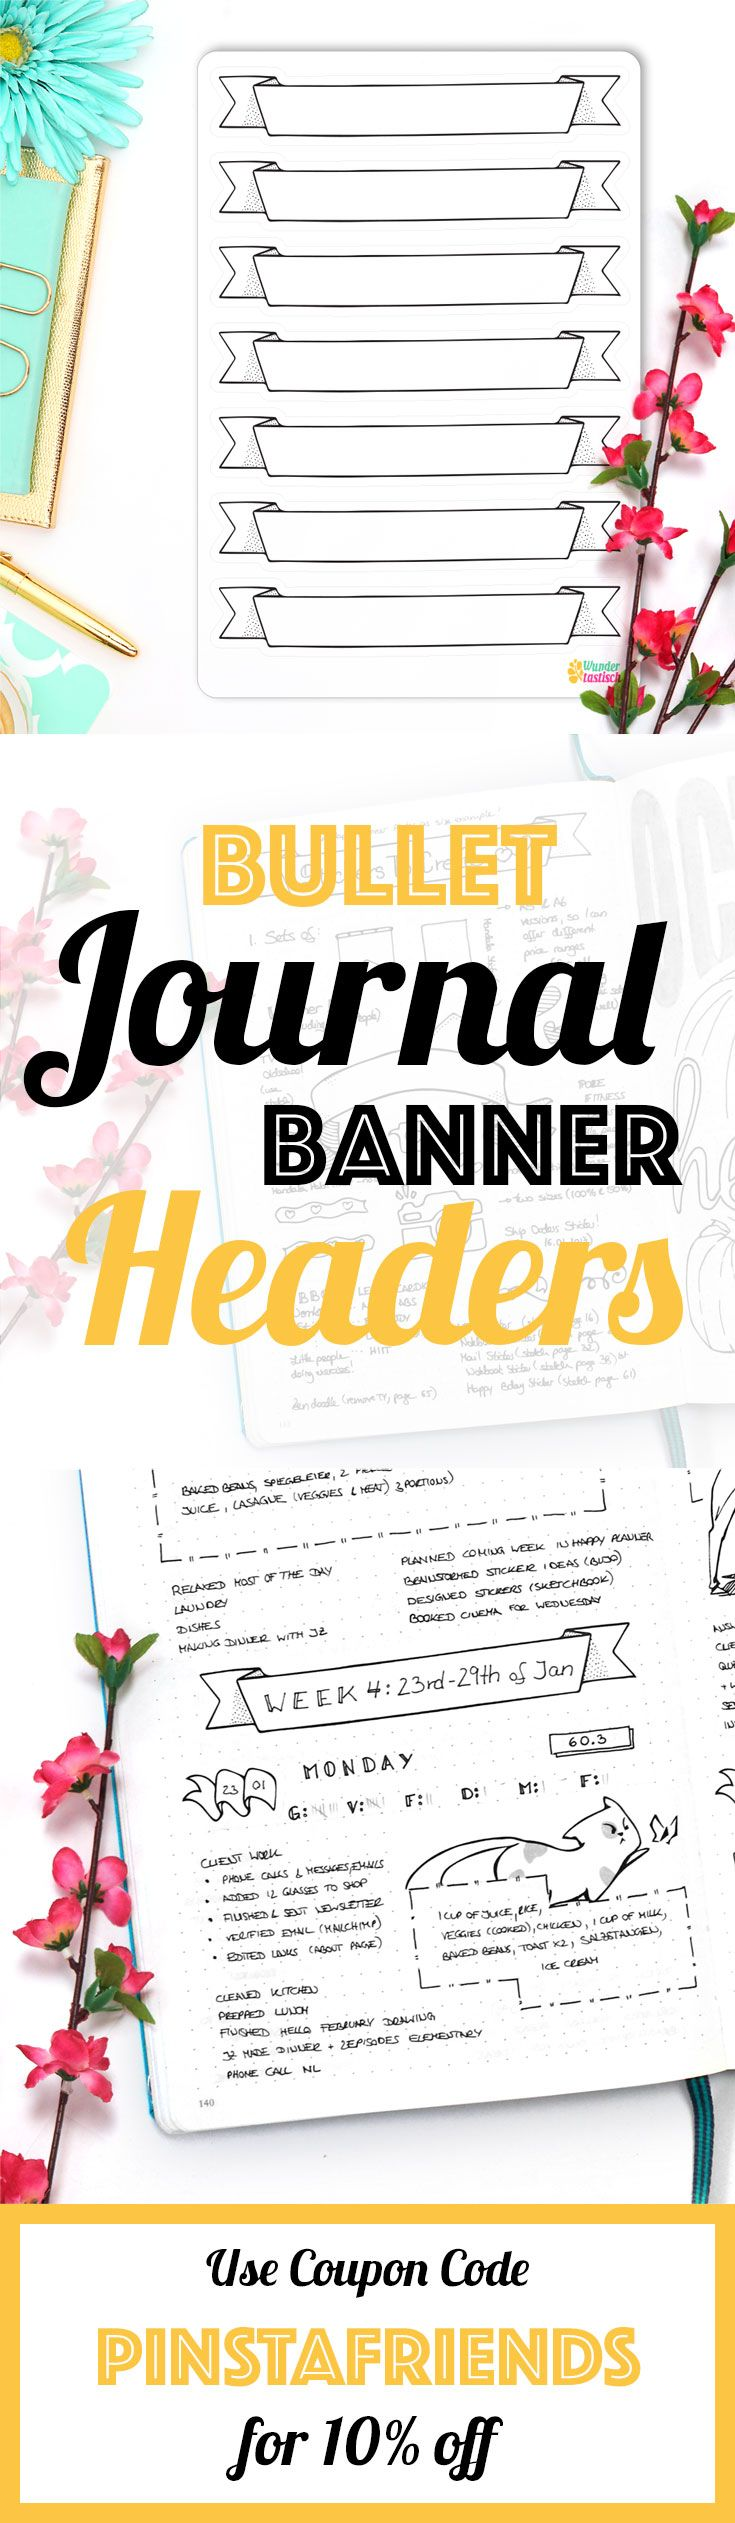 183 best planner inspo images on pinterest bullet journal banners are a great way to spice up your bullet journal or notebook use them biocorpaavc Gallery